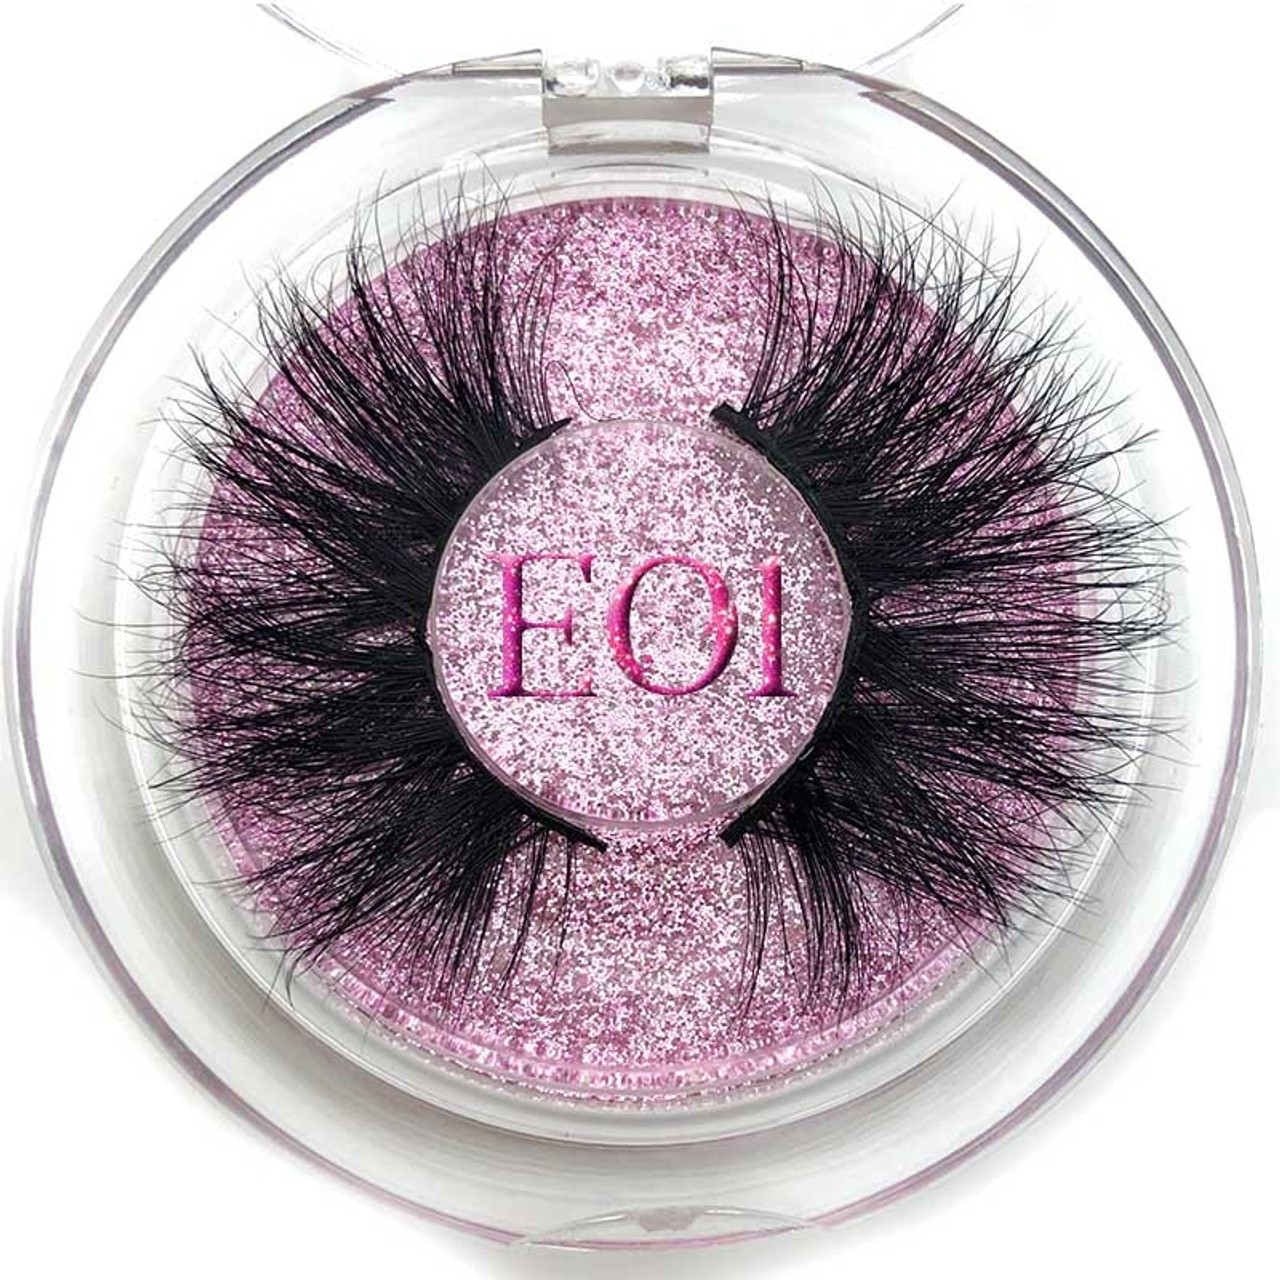 9d6bcc5bddc ... Mikiwi 25mm False Eyelashes Wholesale Thick Strip 25mm 3D Mink Lashes  Custom Packaging Label Makeup Dramatic ...